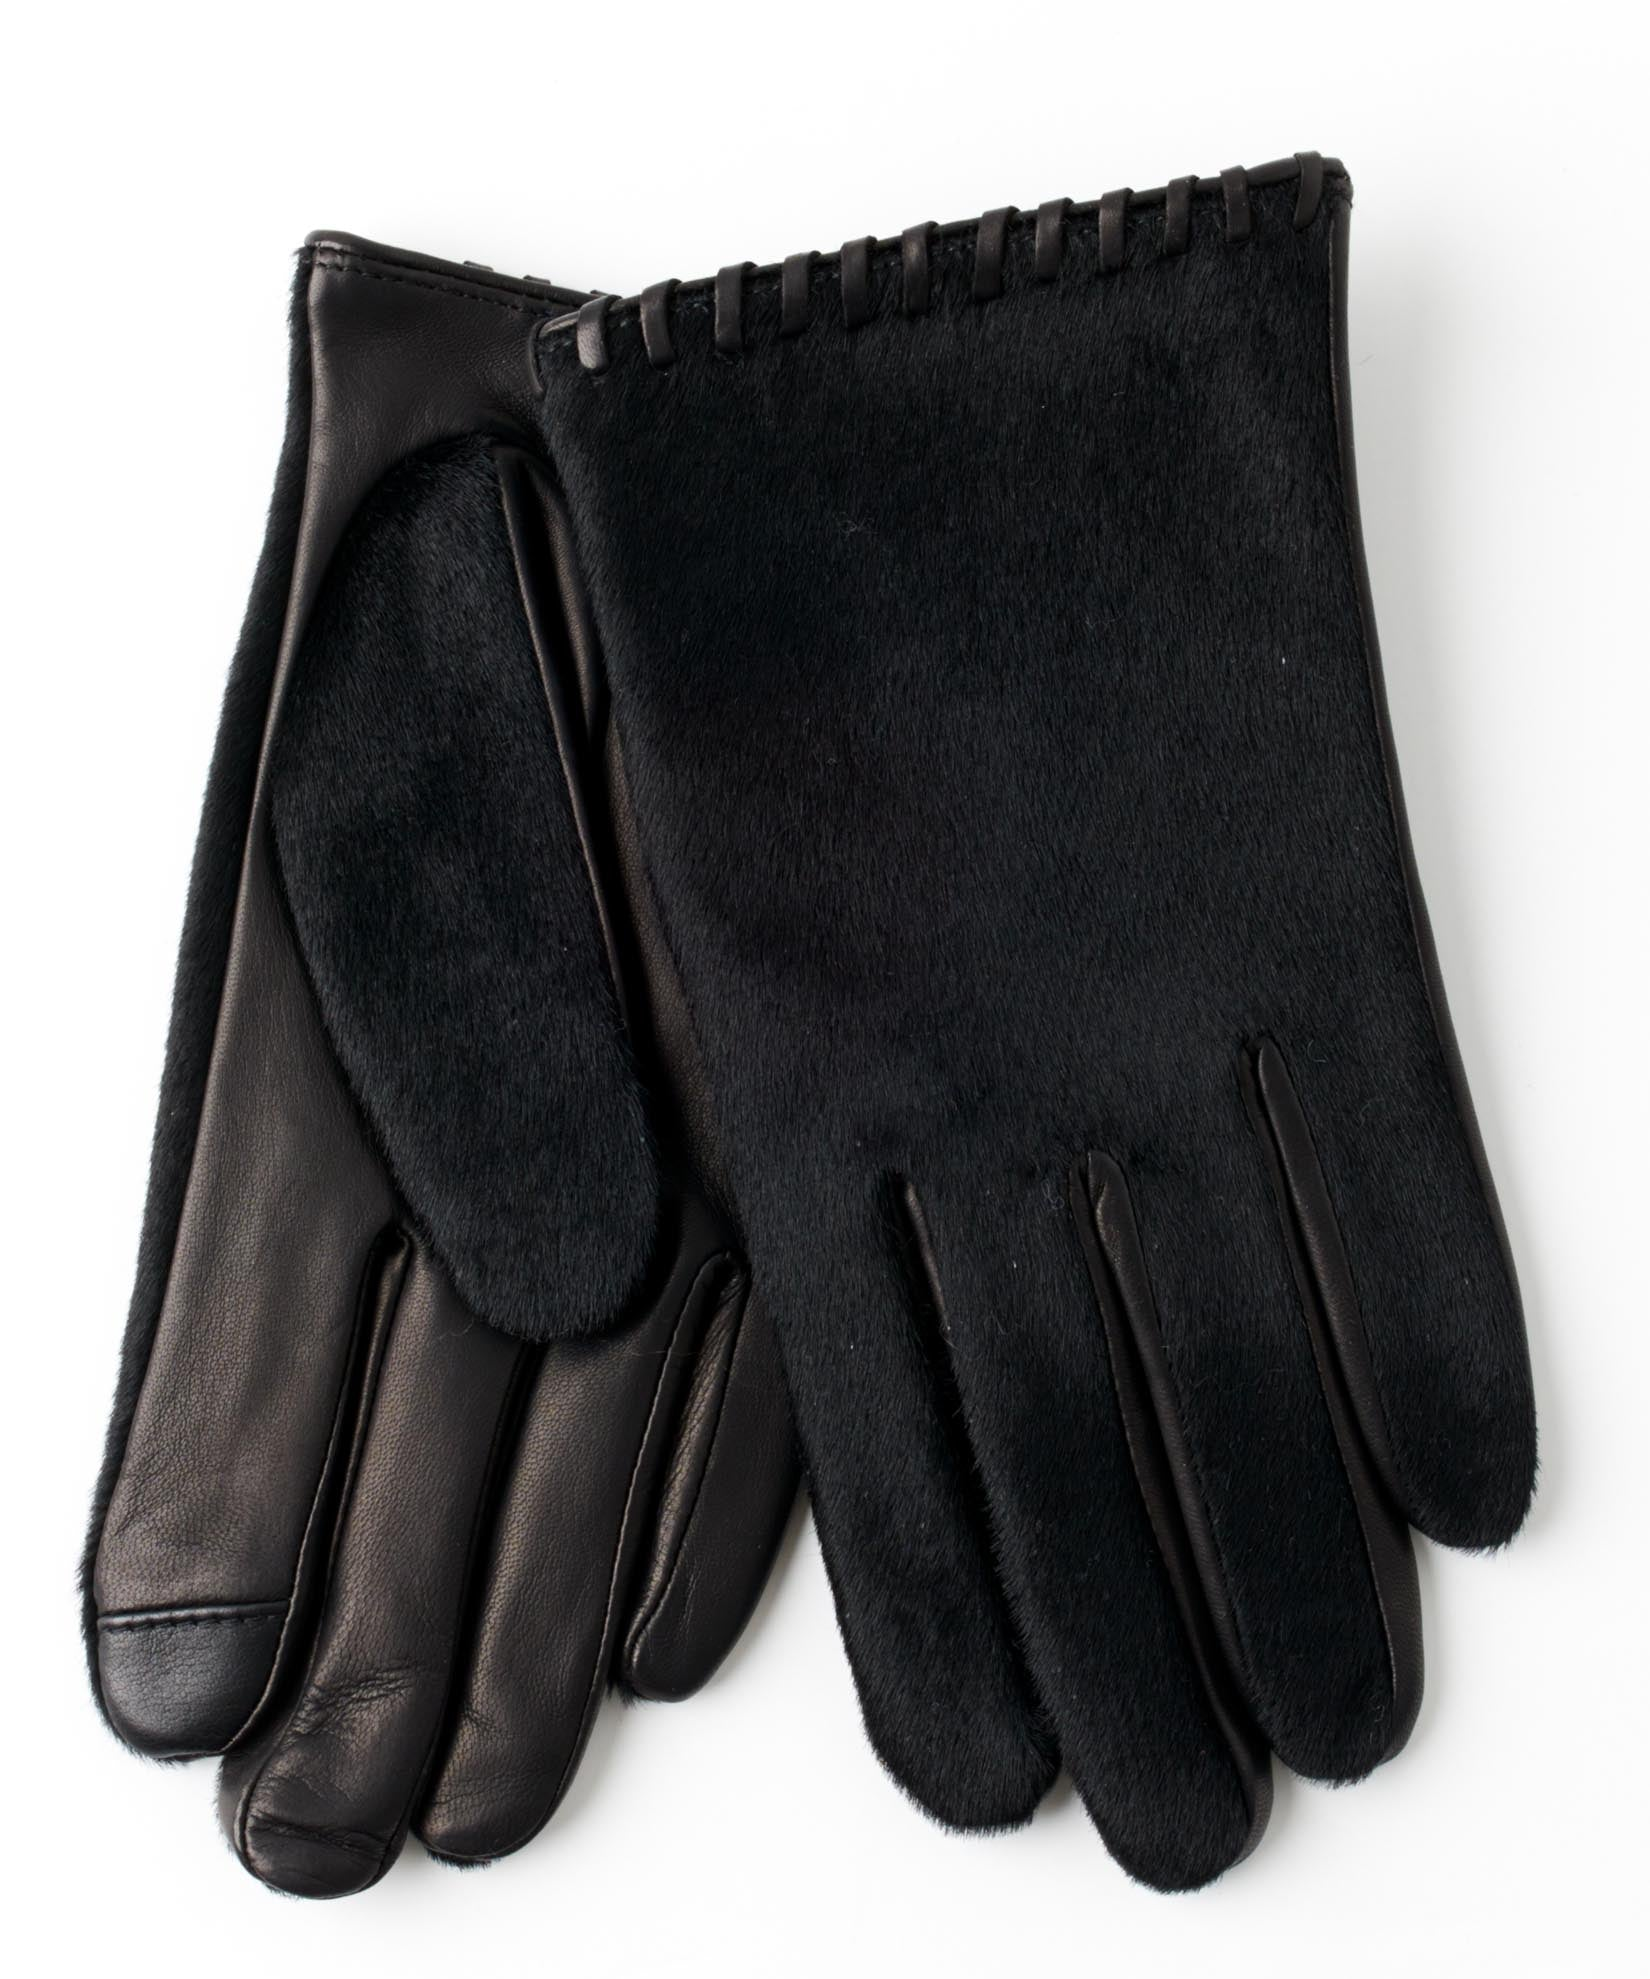 Black - Whipstitch Calf Hair Glove